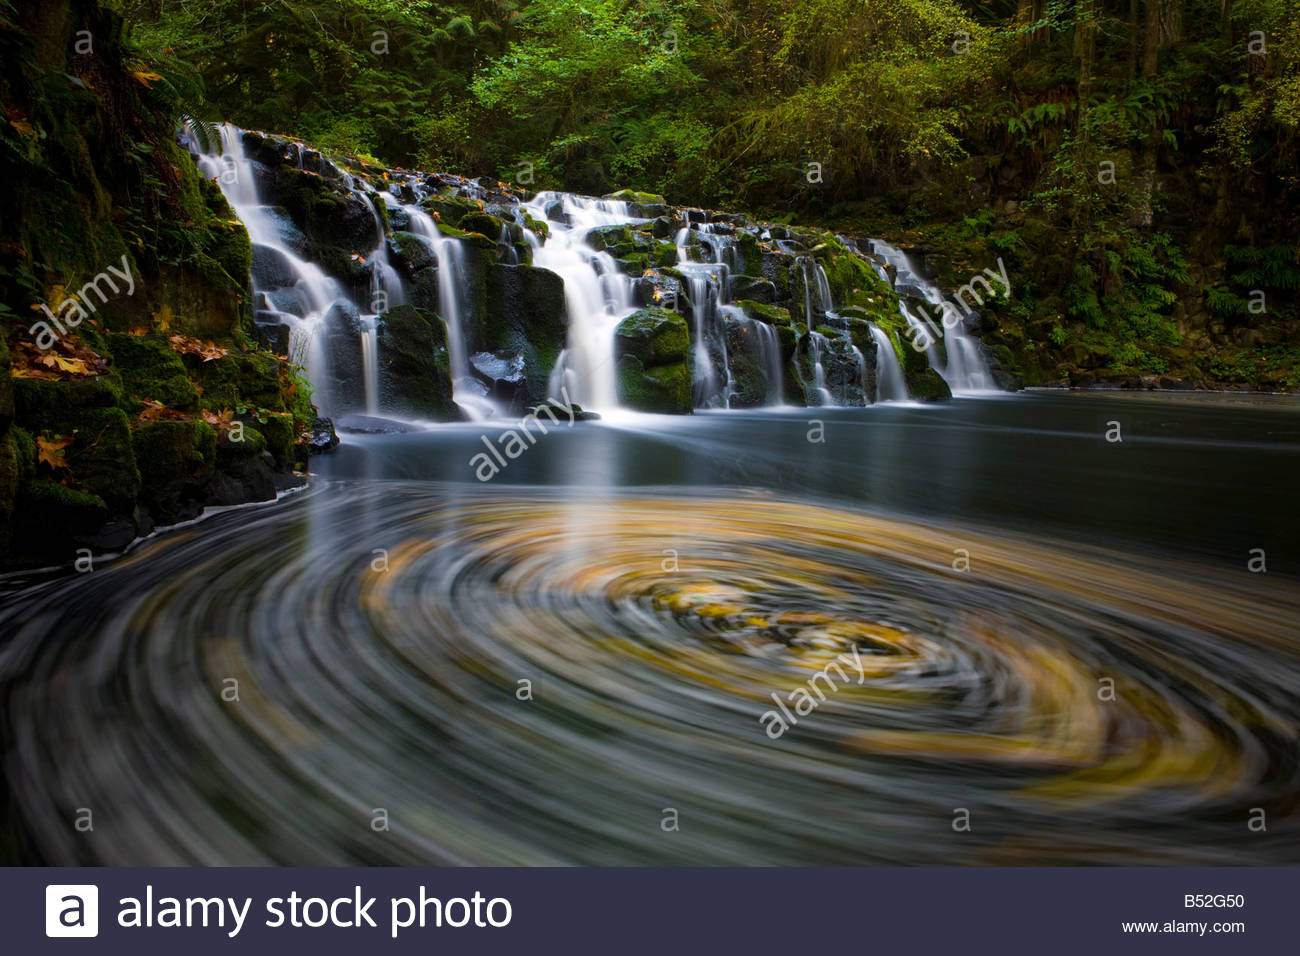 Fallen leaves seem to be trapped in a vortex beneath Upper Beaver Creek Falls in Oregon. - Stock Image